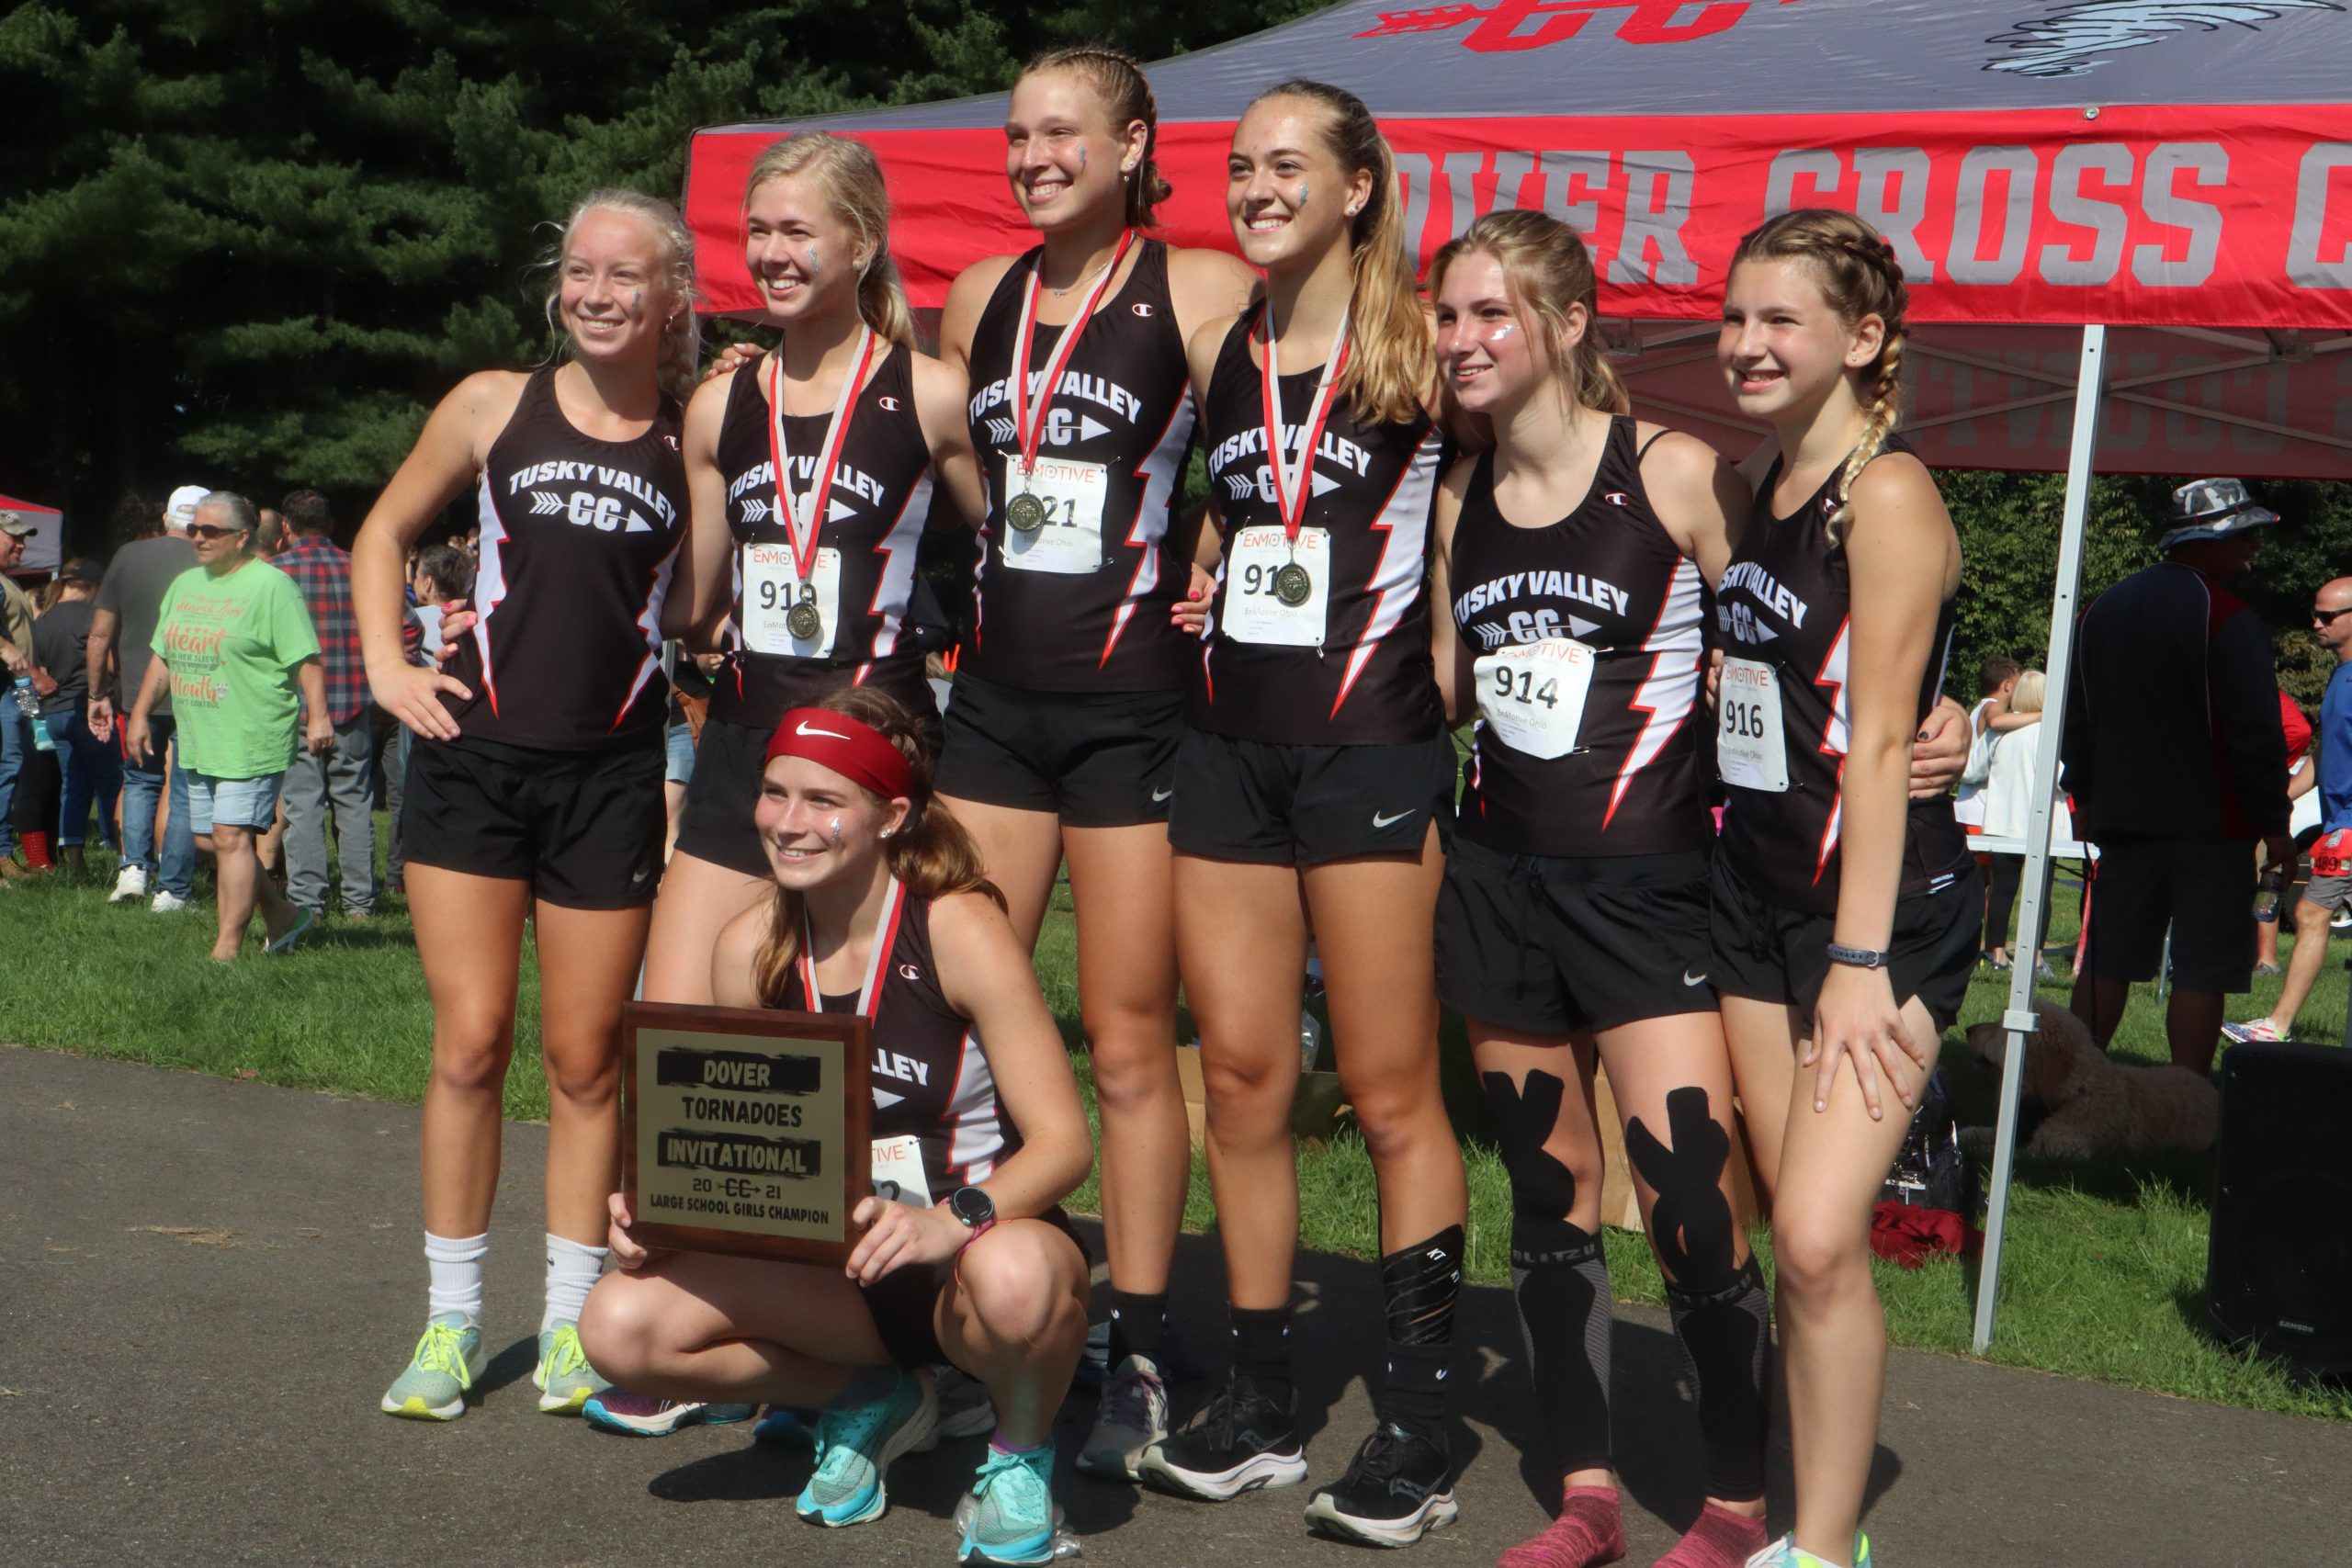 Tuscarawas Valley's girls cross country team won the Dover Invitational race on Saturday at Dover City Park - led by Hannah Wyler's individual medalist performance.